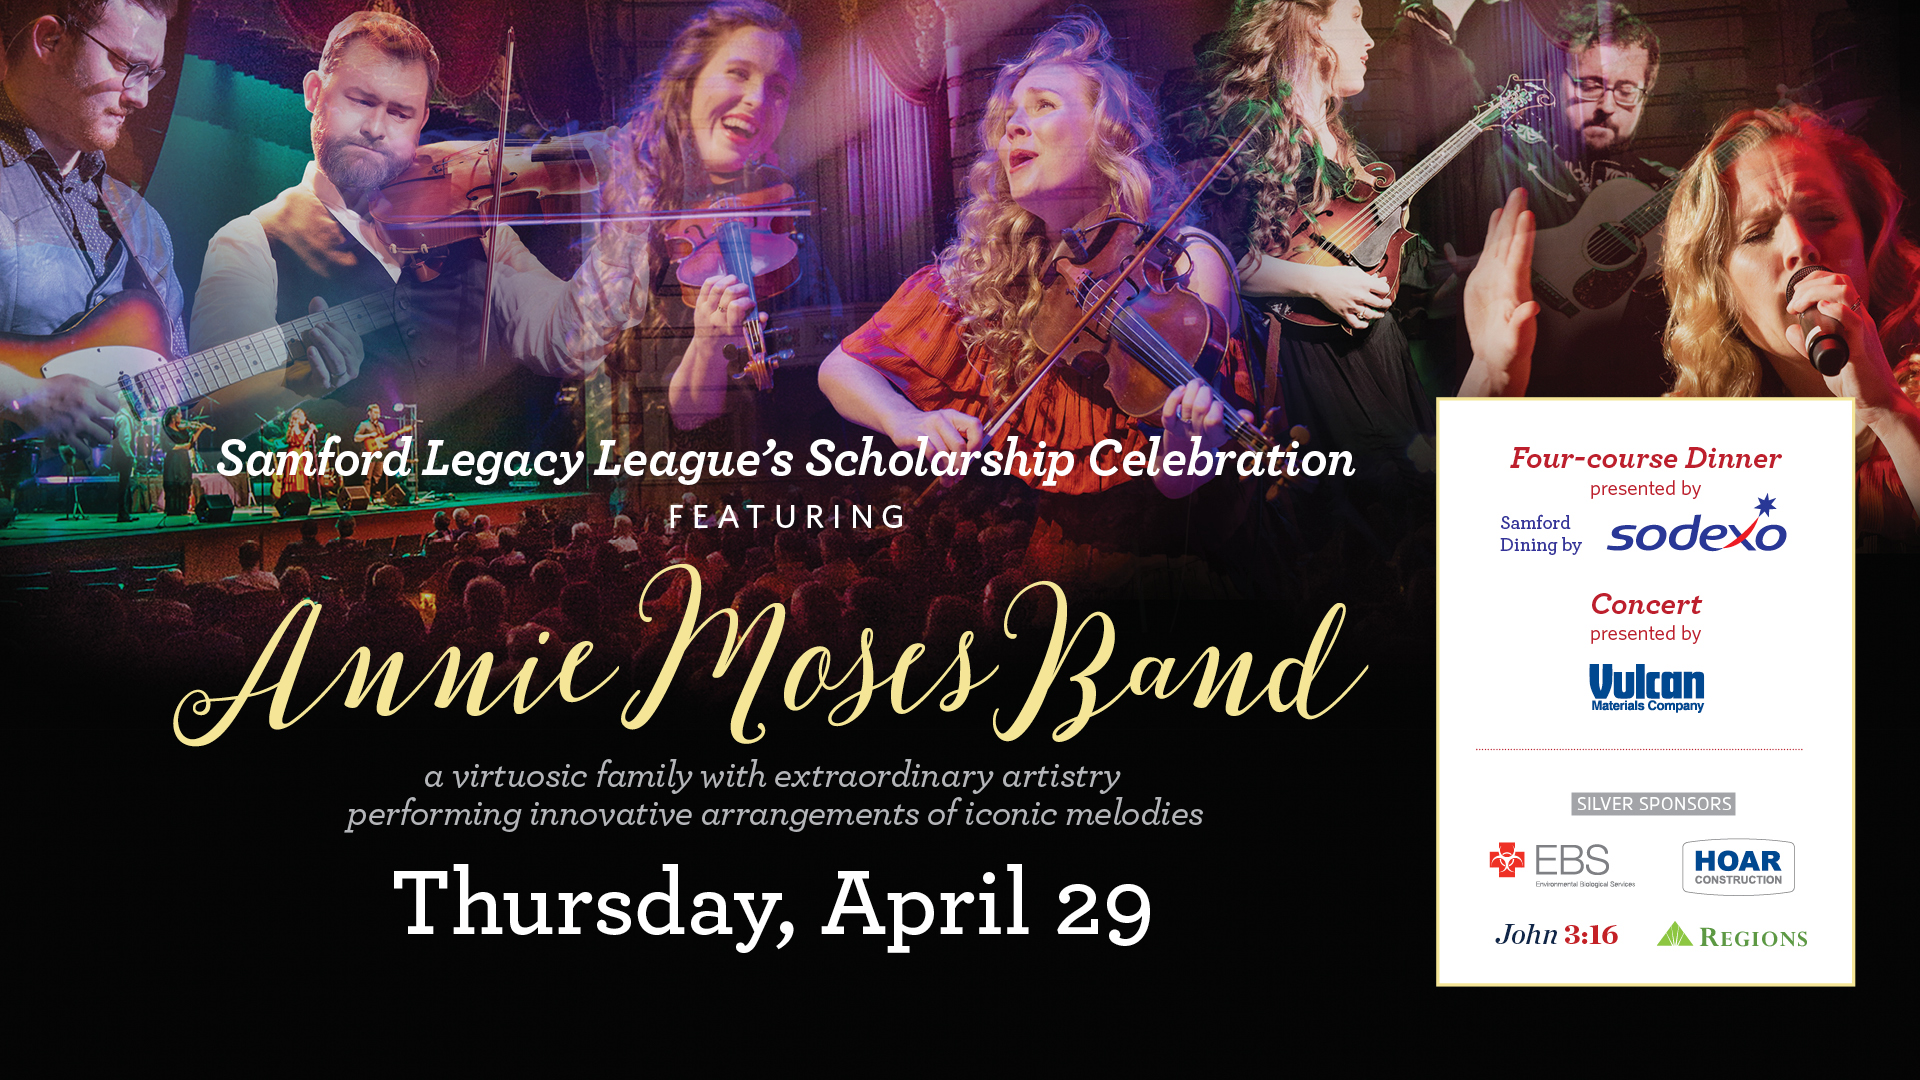 Samford Legacy League's Scholarship Celebration Featuring Annie Moses Band